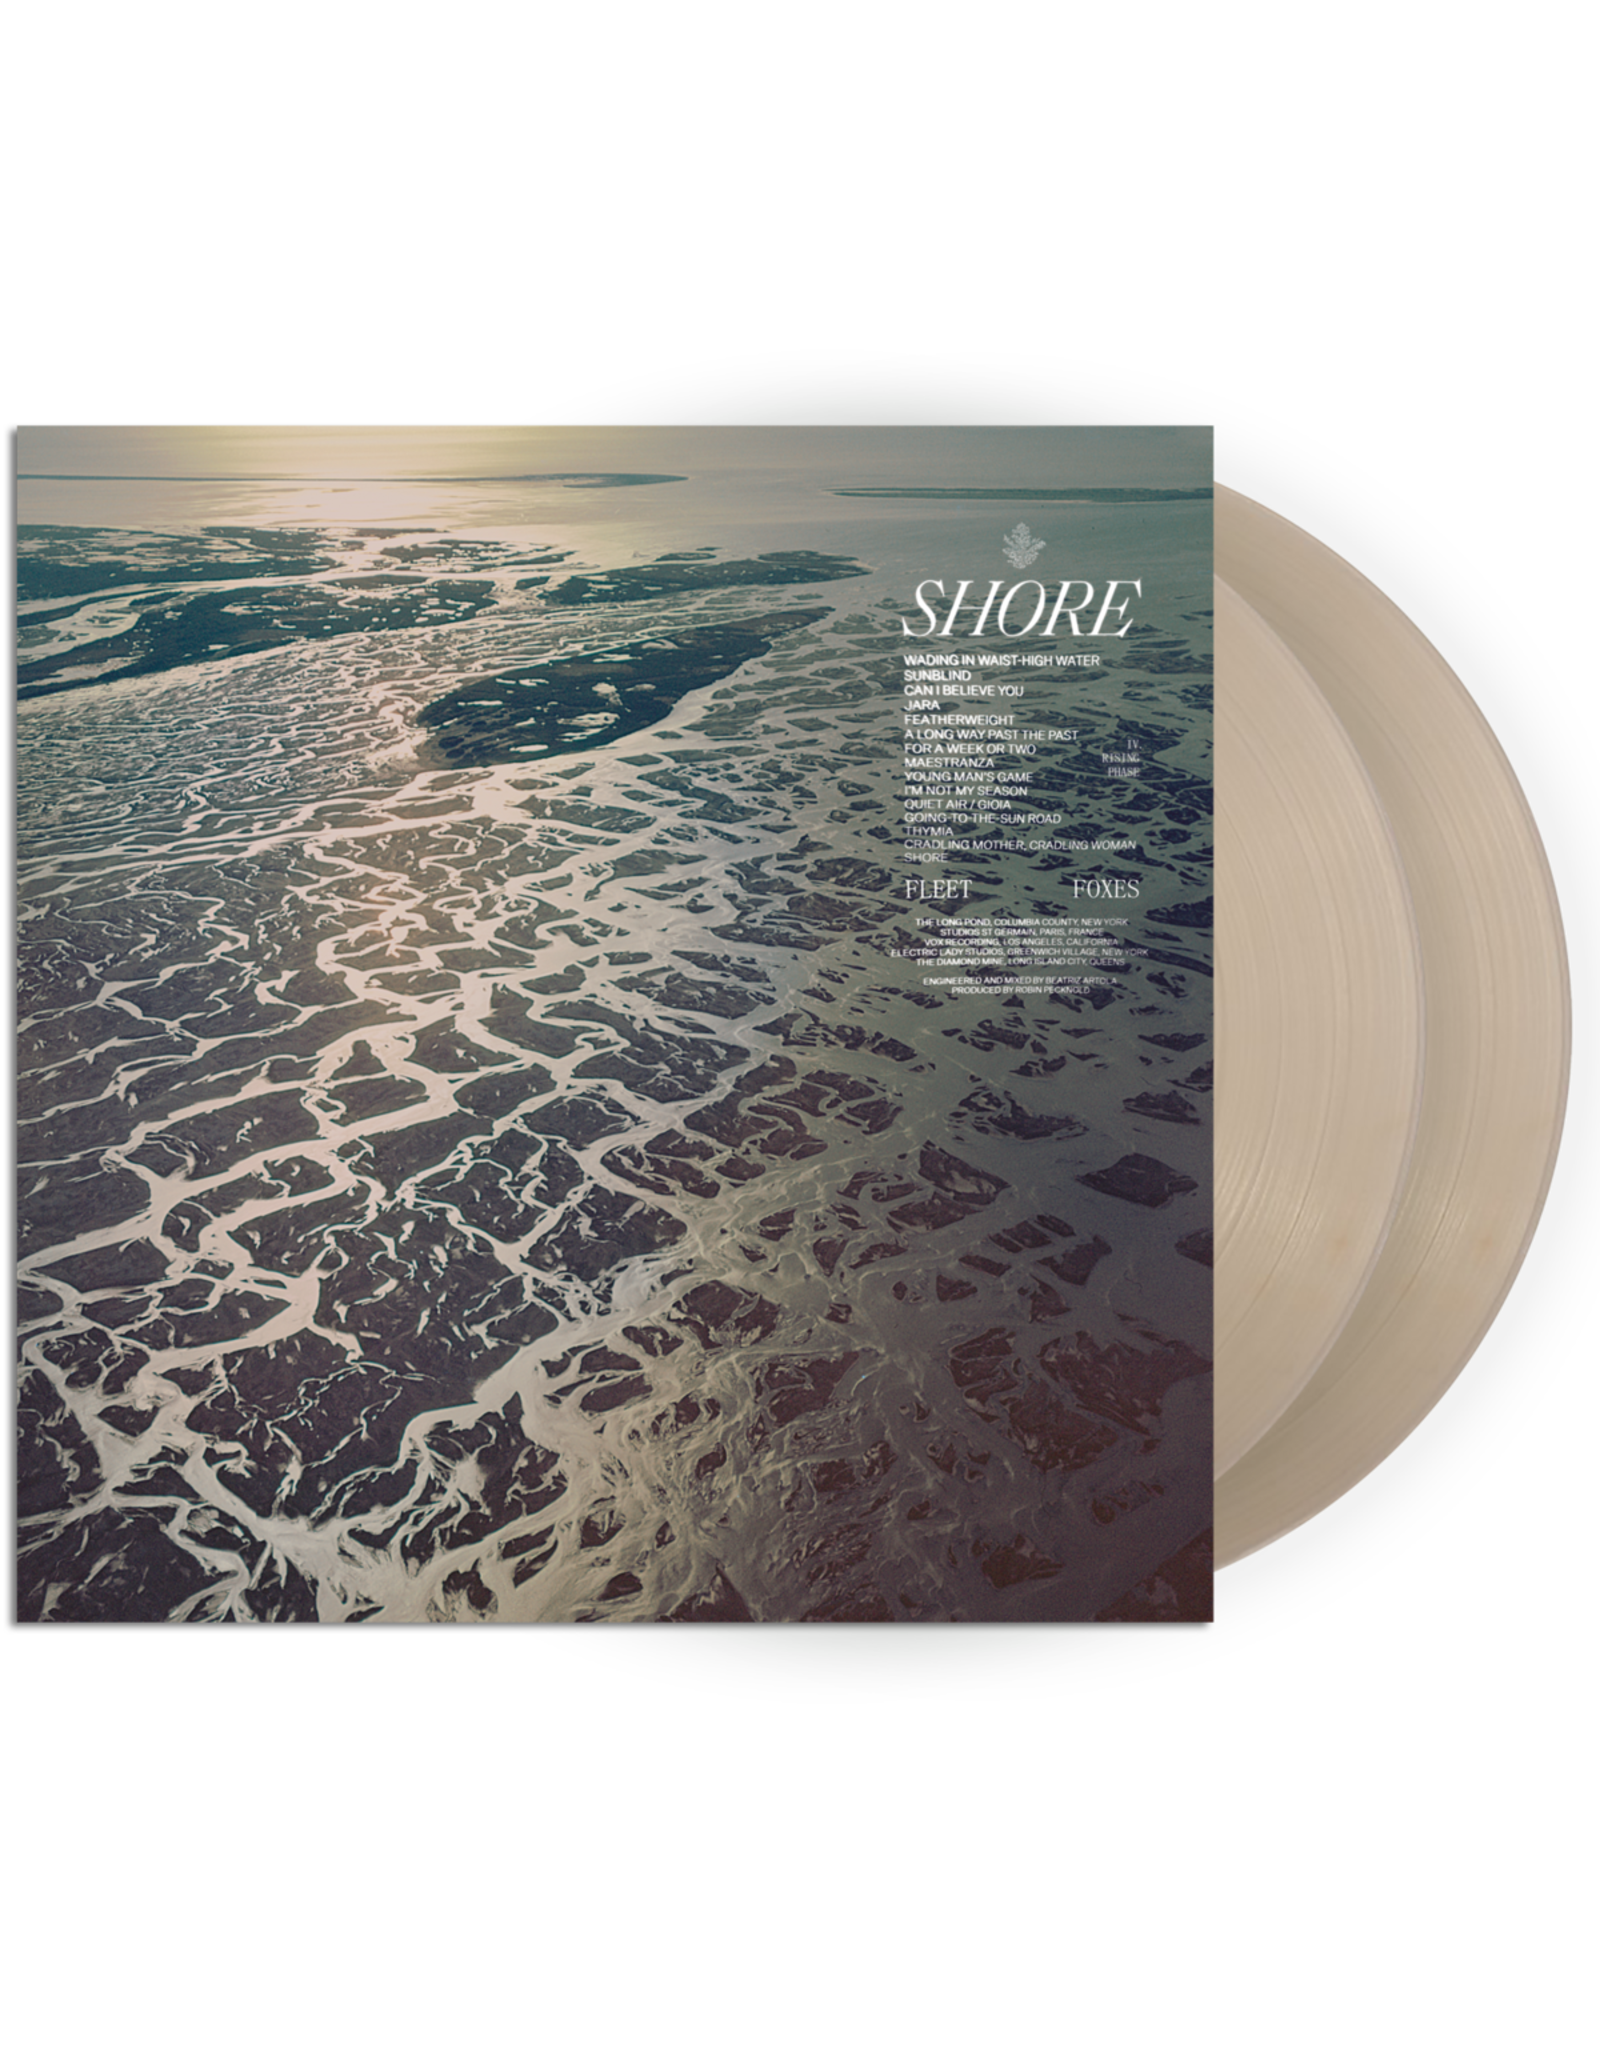 Fleet Foxes - Shore (Exclusive Crystal Clear Vinyl)